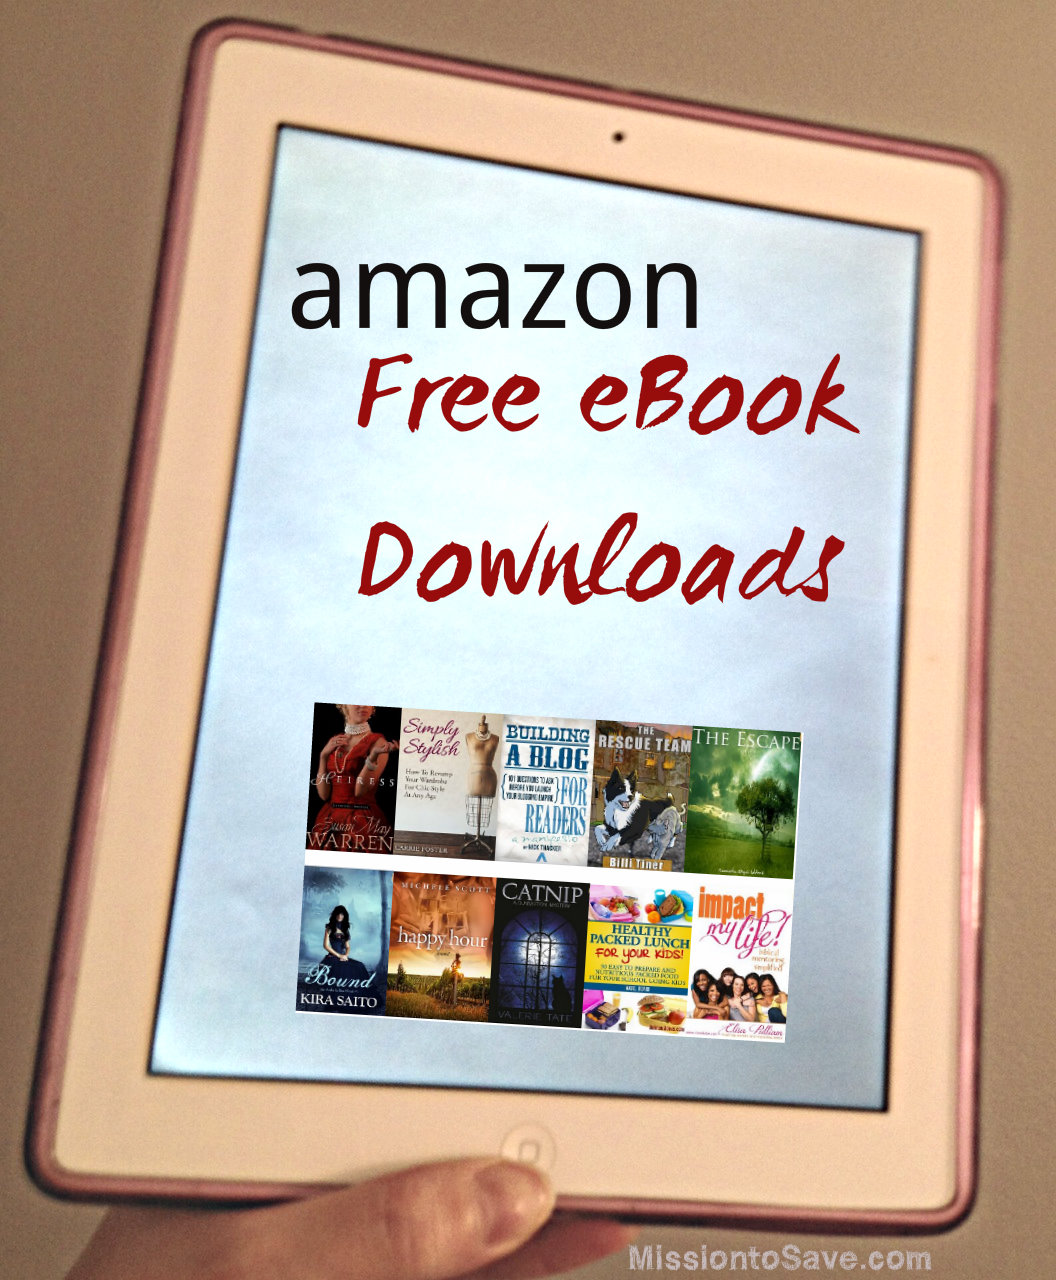 amazon-free-ebook-downloads